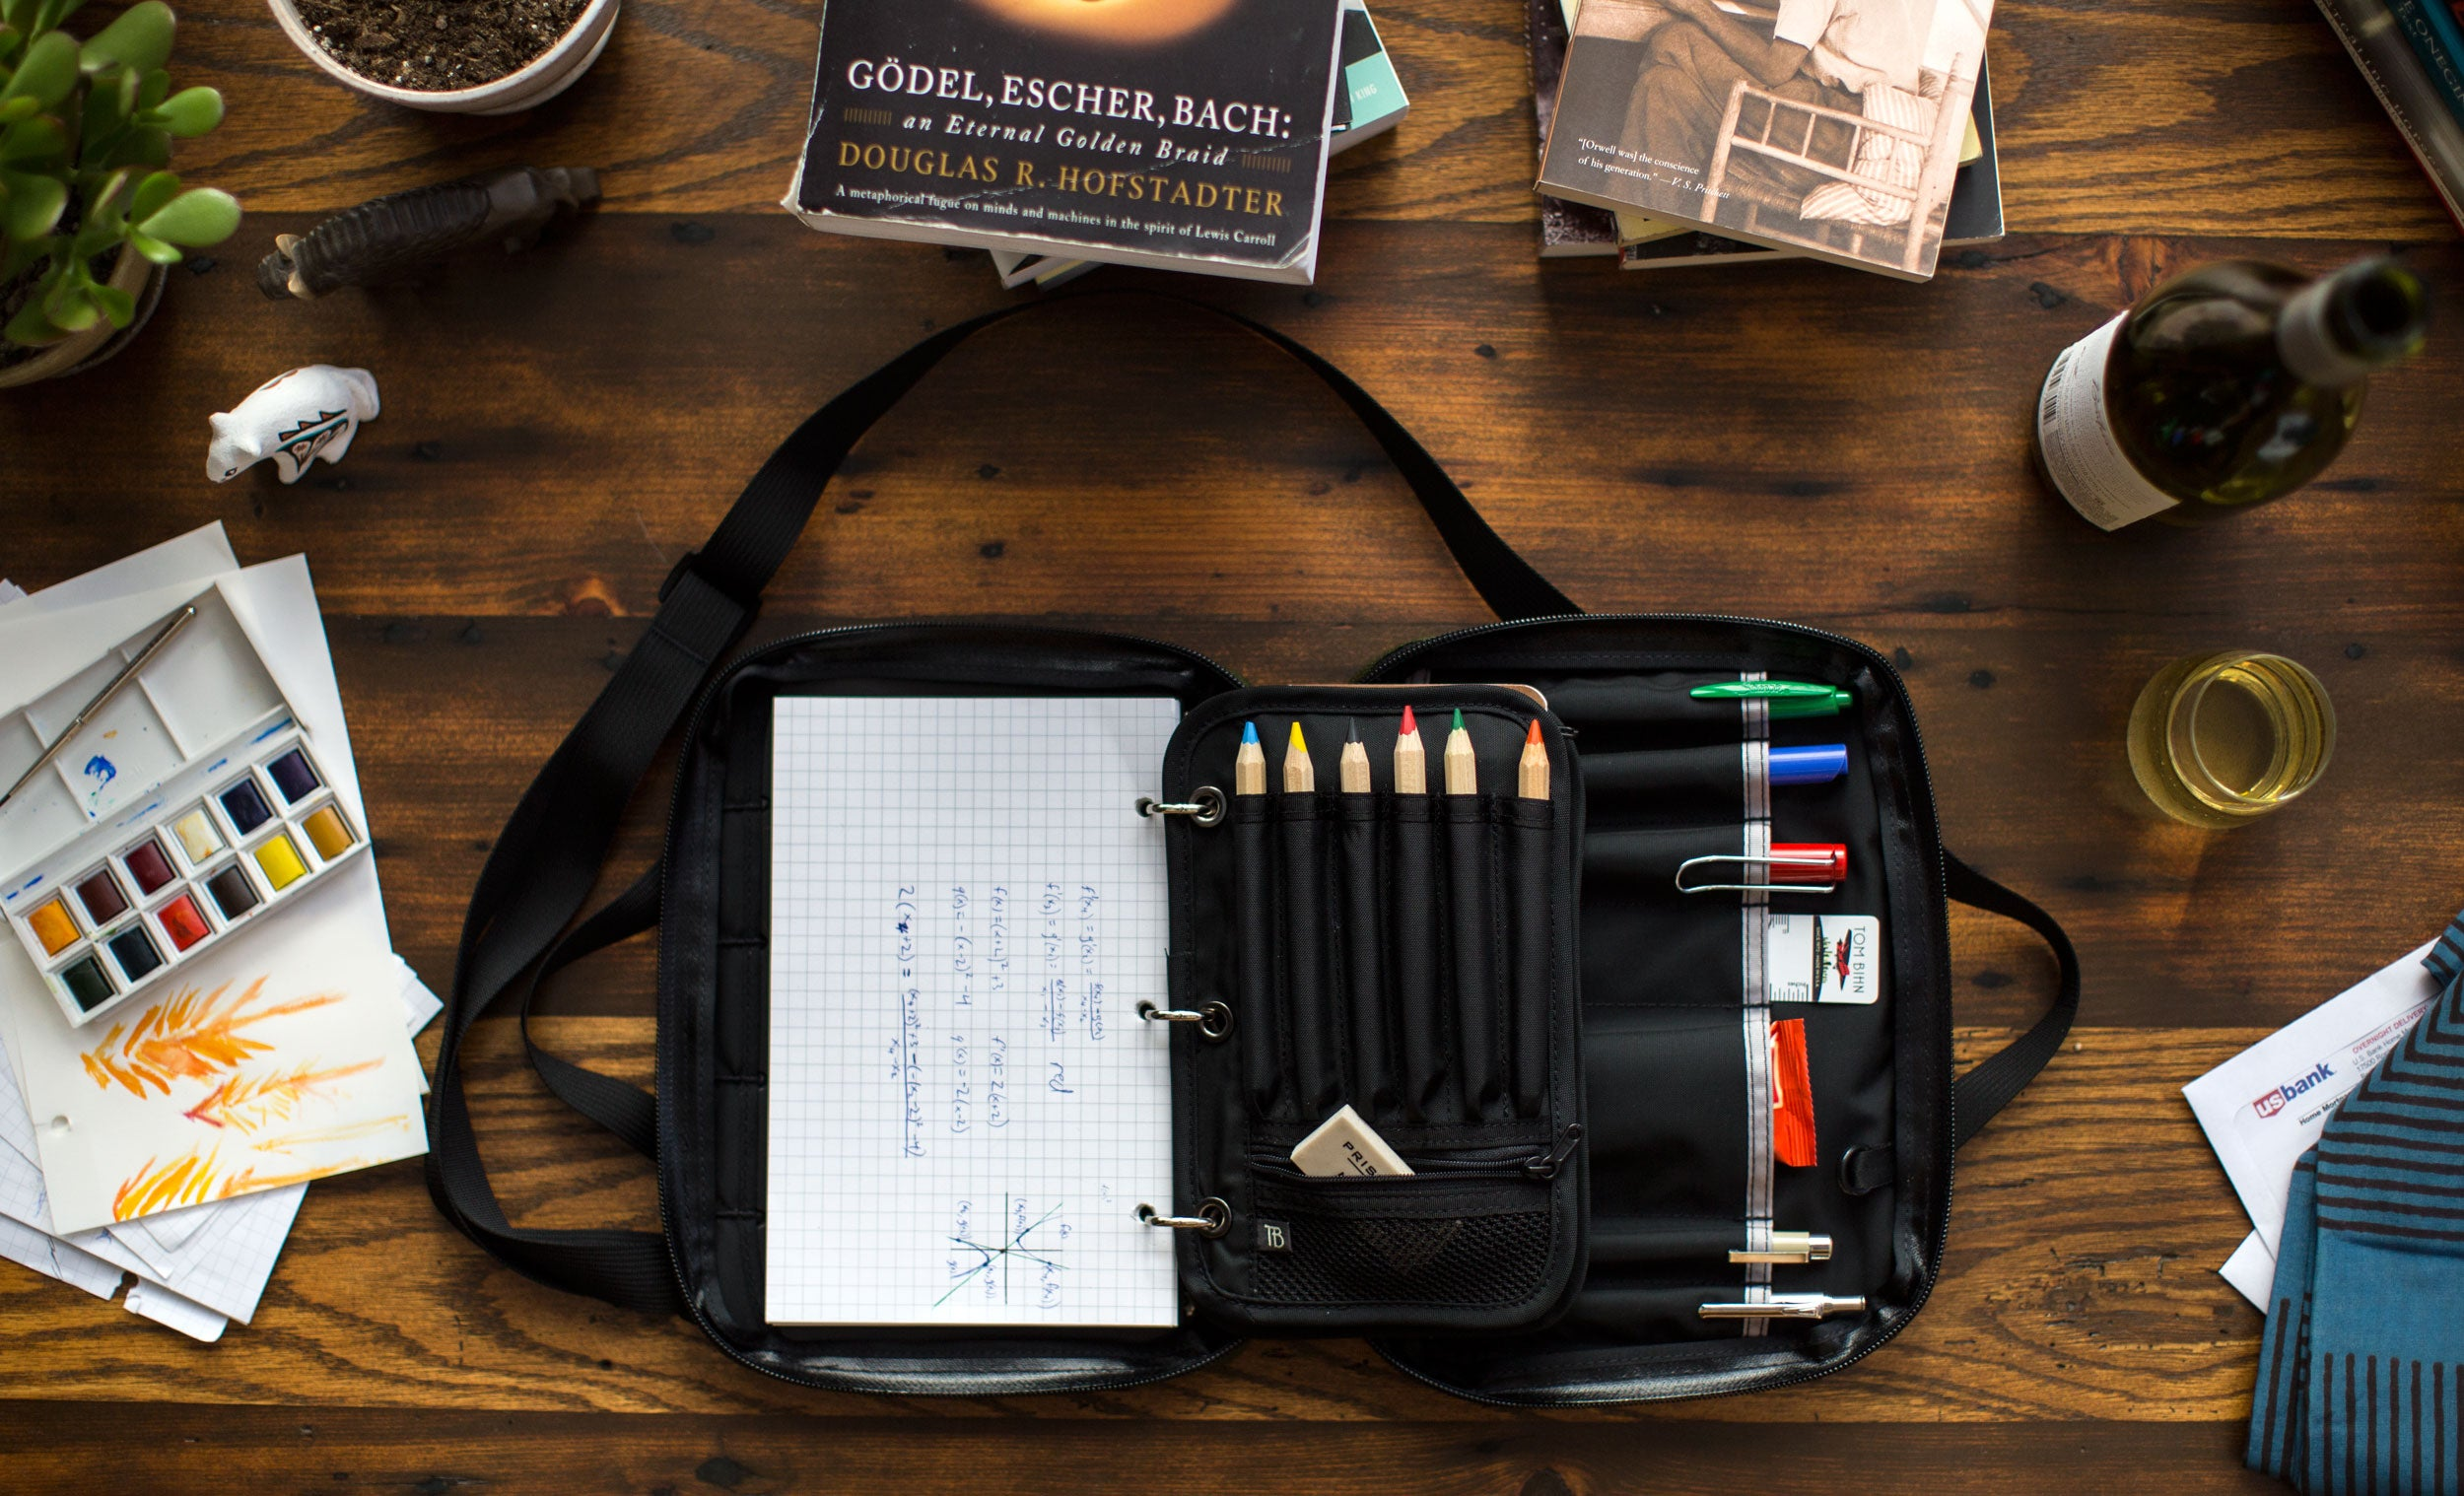 TOM BIHN | The Field Journal Notebook Returns